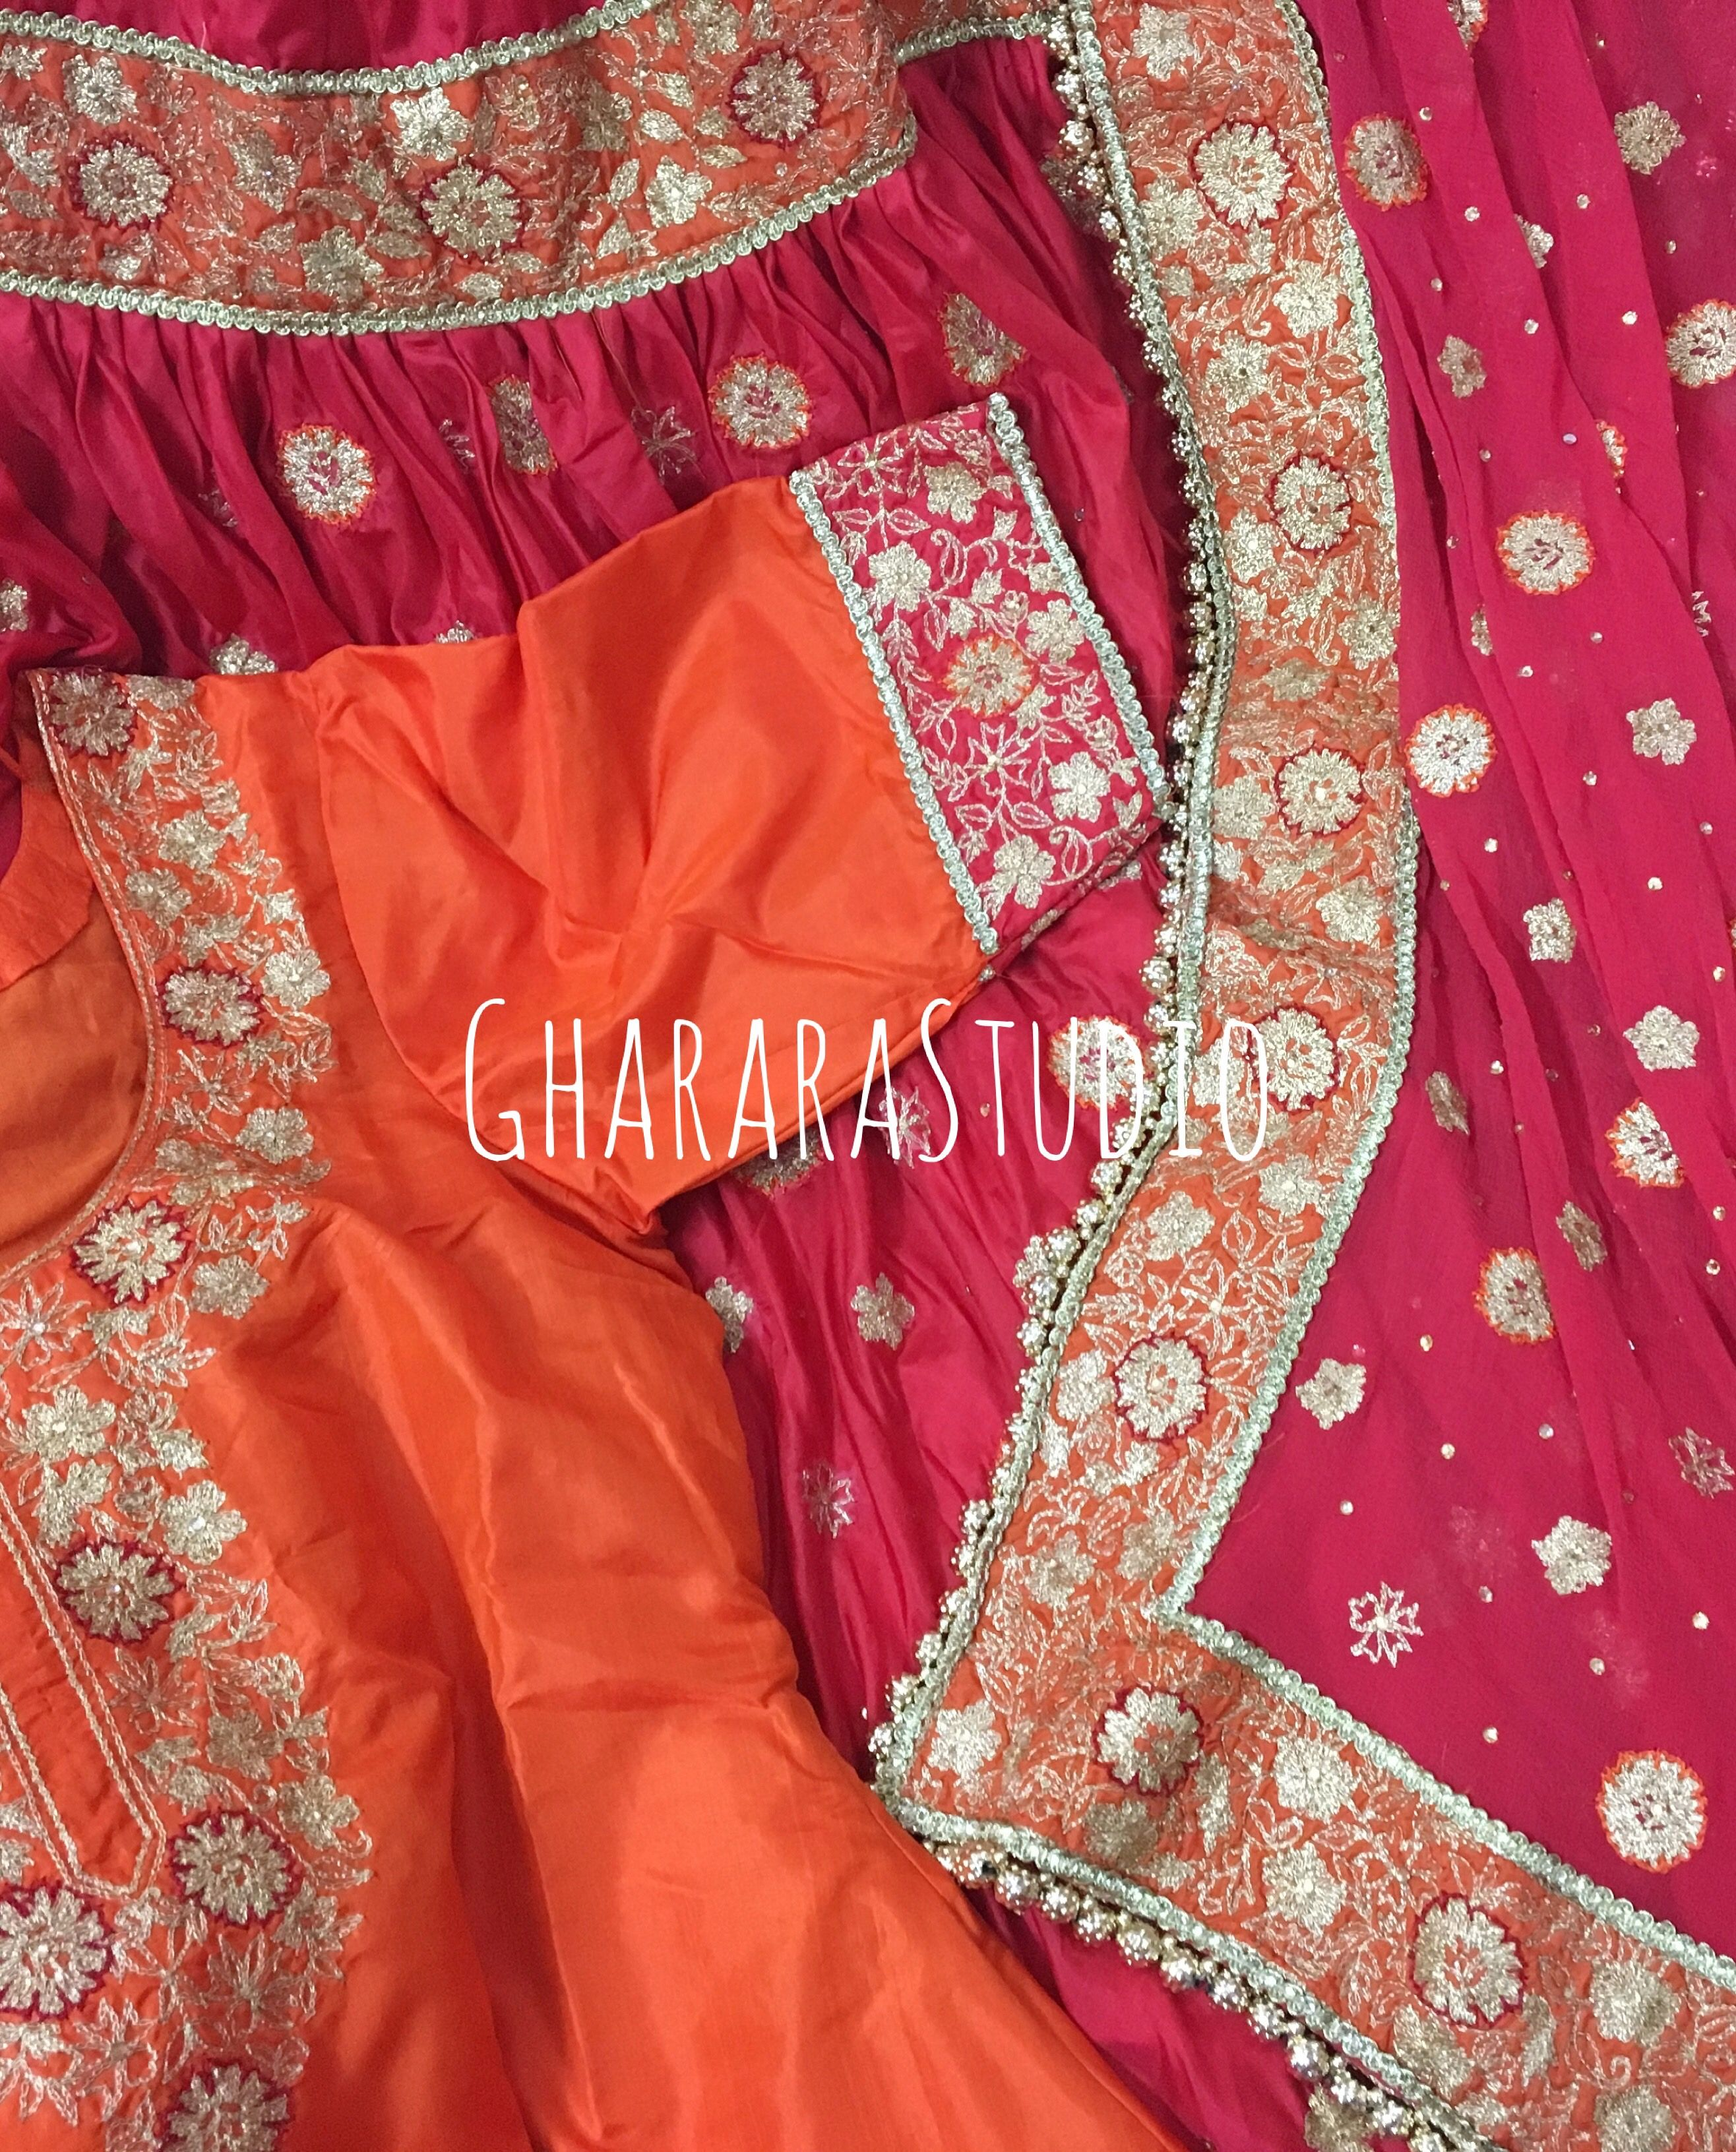 4e1427fb7f Silk Gharara with zari handwork booty all over and handwork on the laces  with contrast base. Whatsapp at +919971865919 to order.